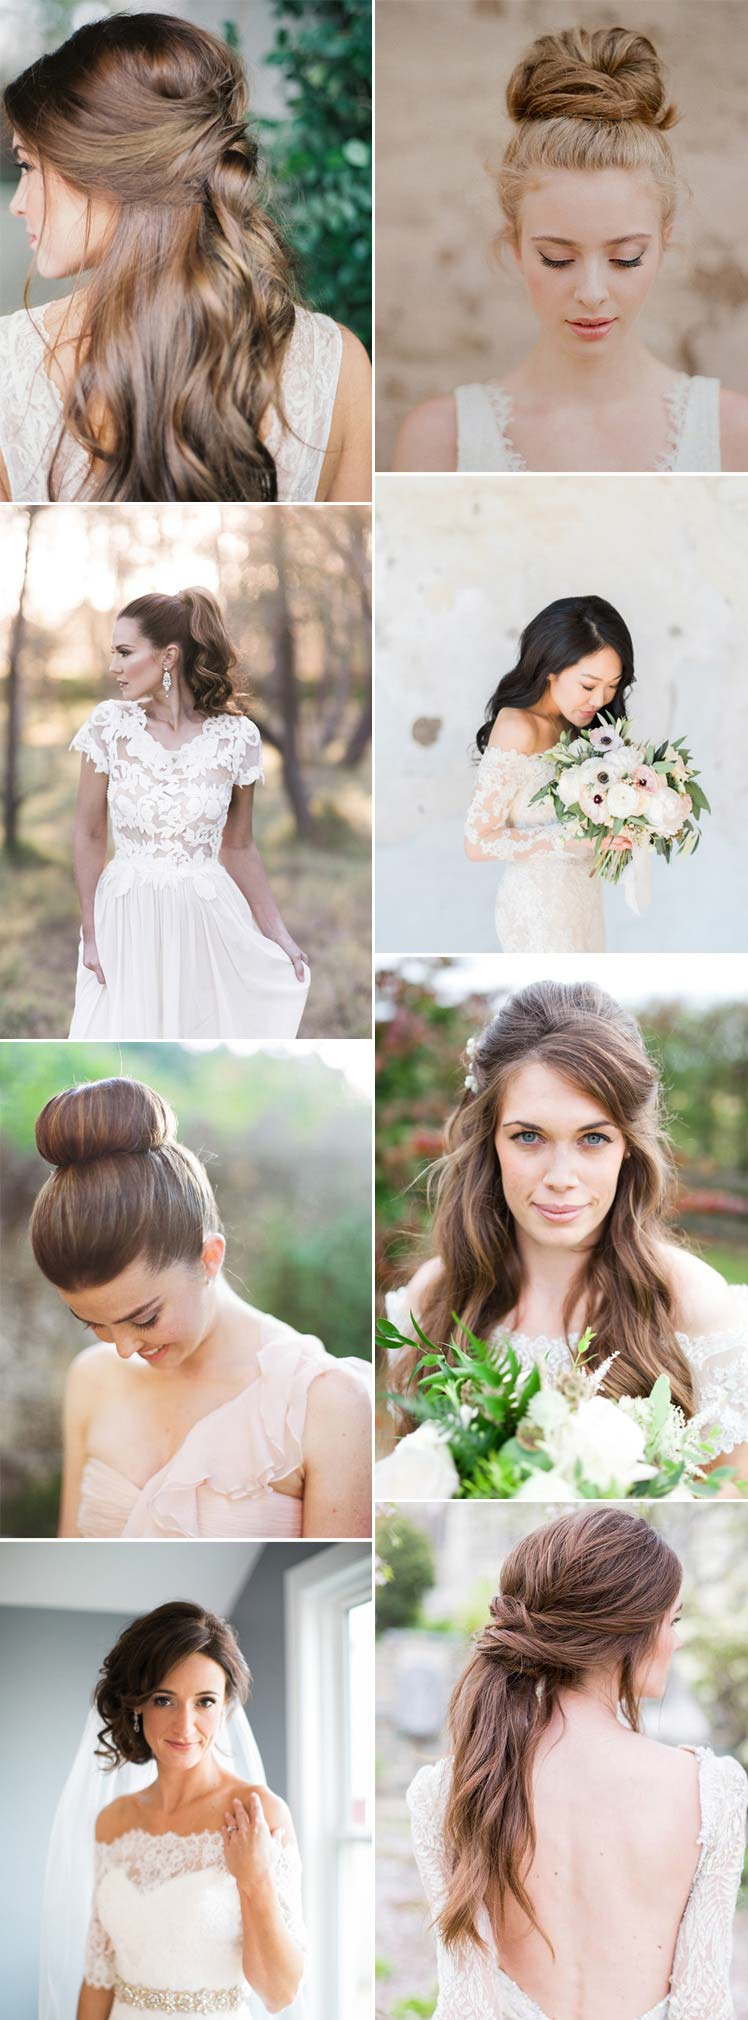 feminine bridal hairstyles for 2017